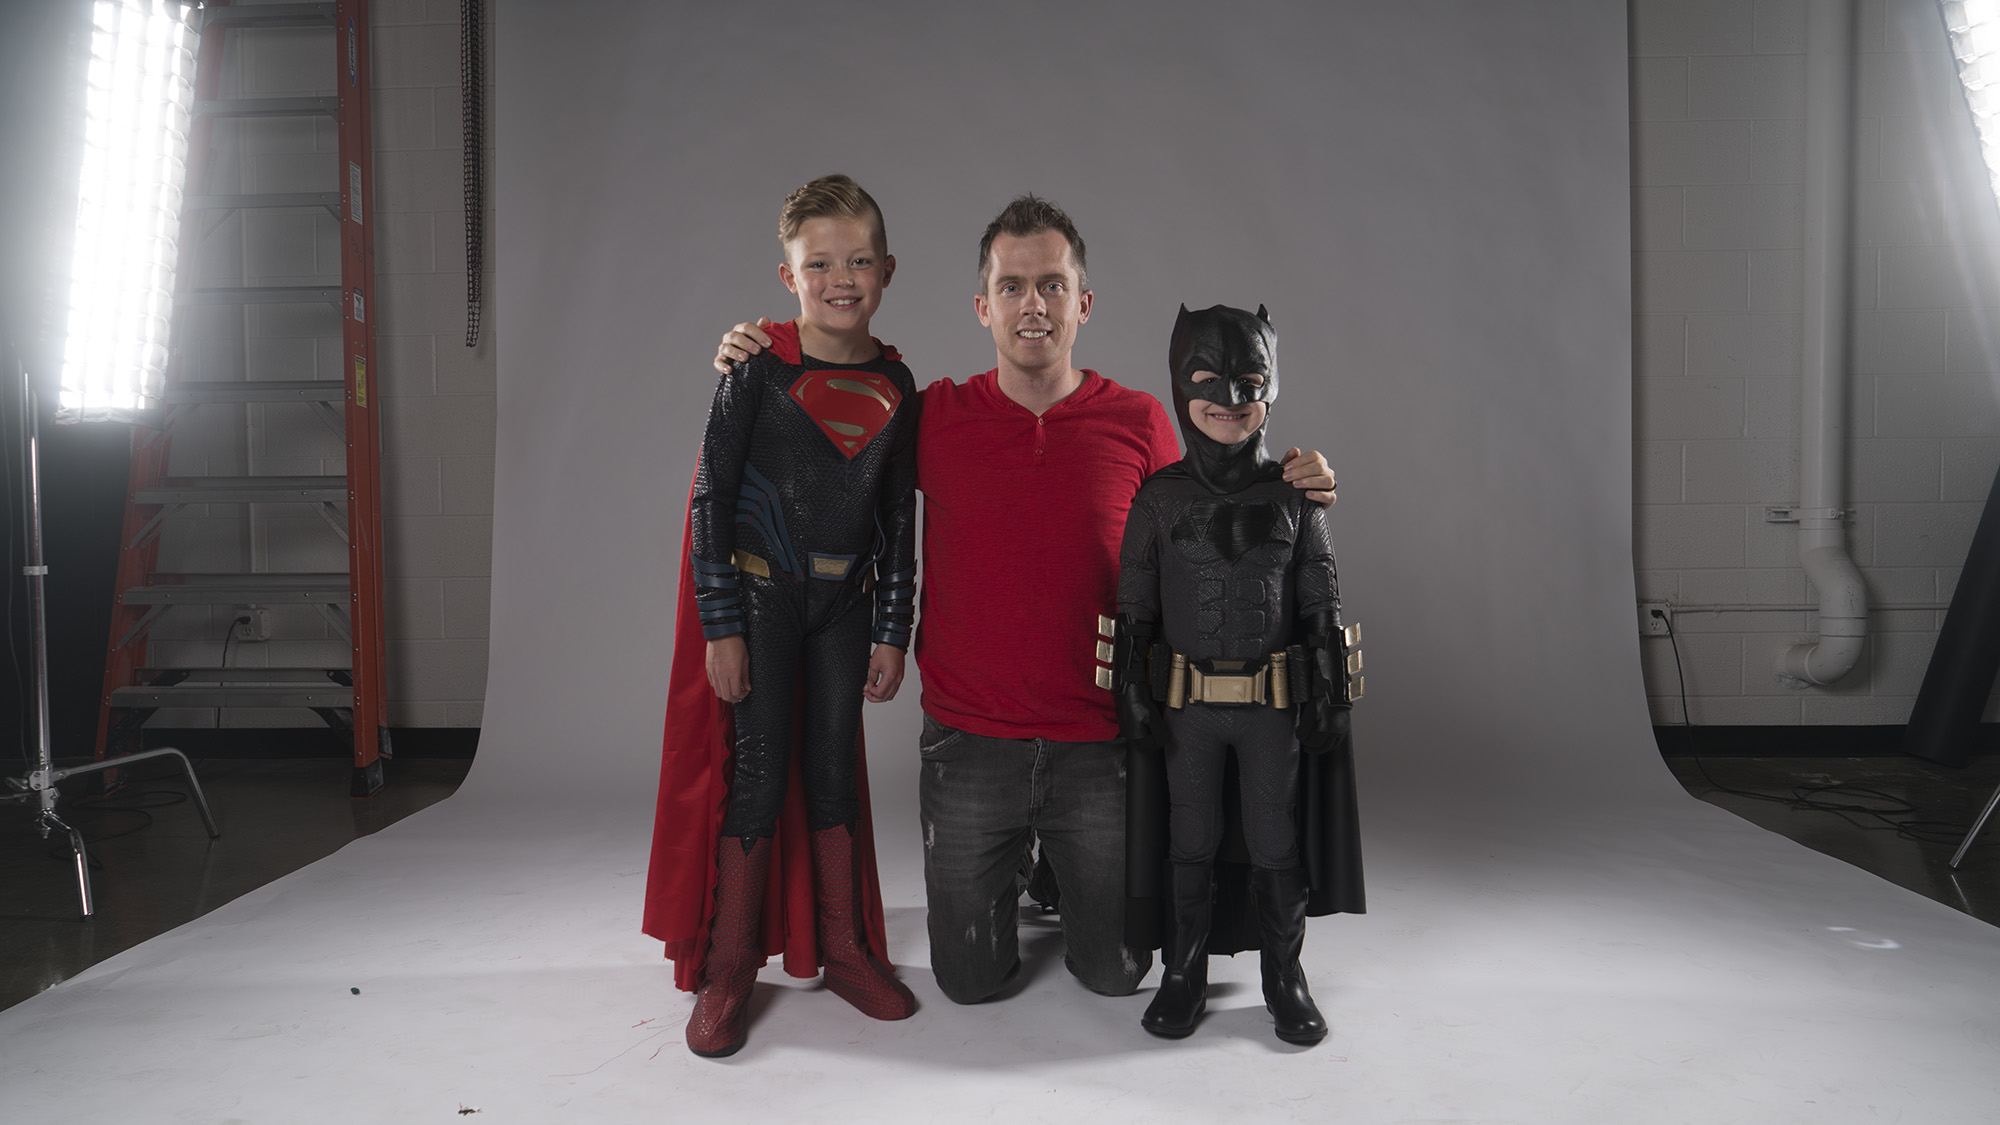 Courtesy: Josh Rossi - Josh Rossi with Taegan (Superman) and Simon (Batman)